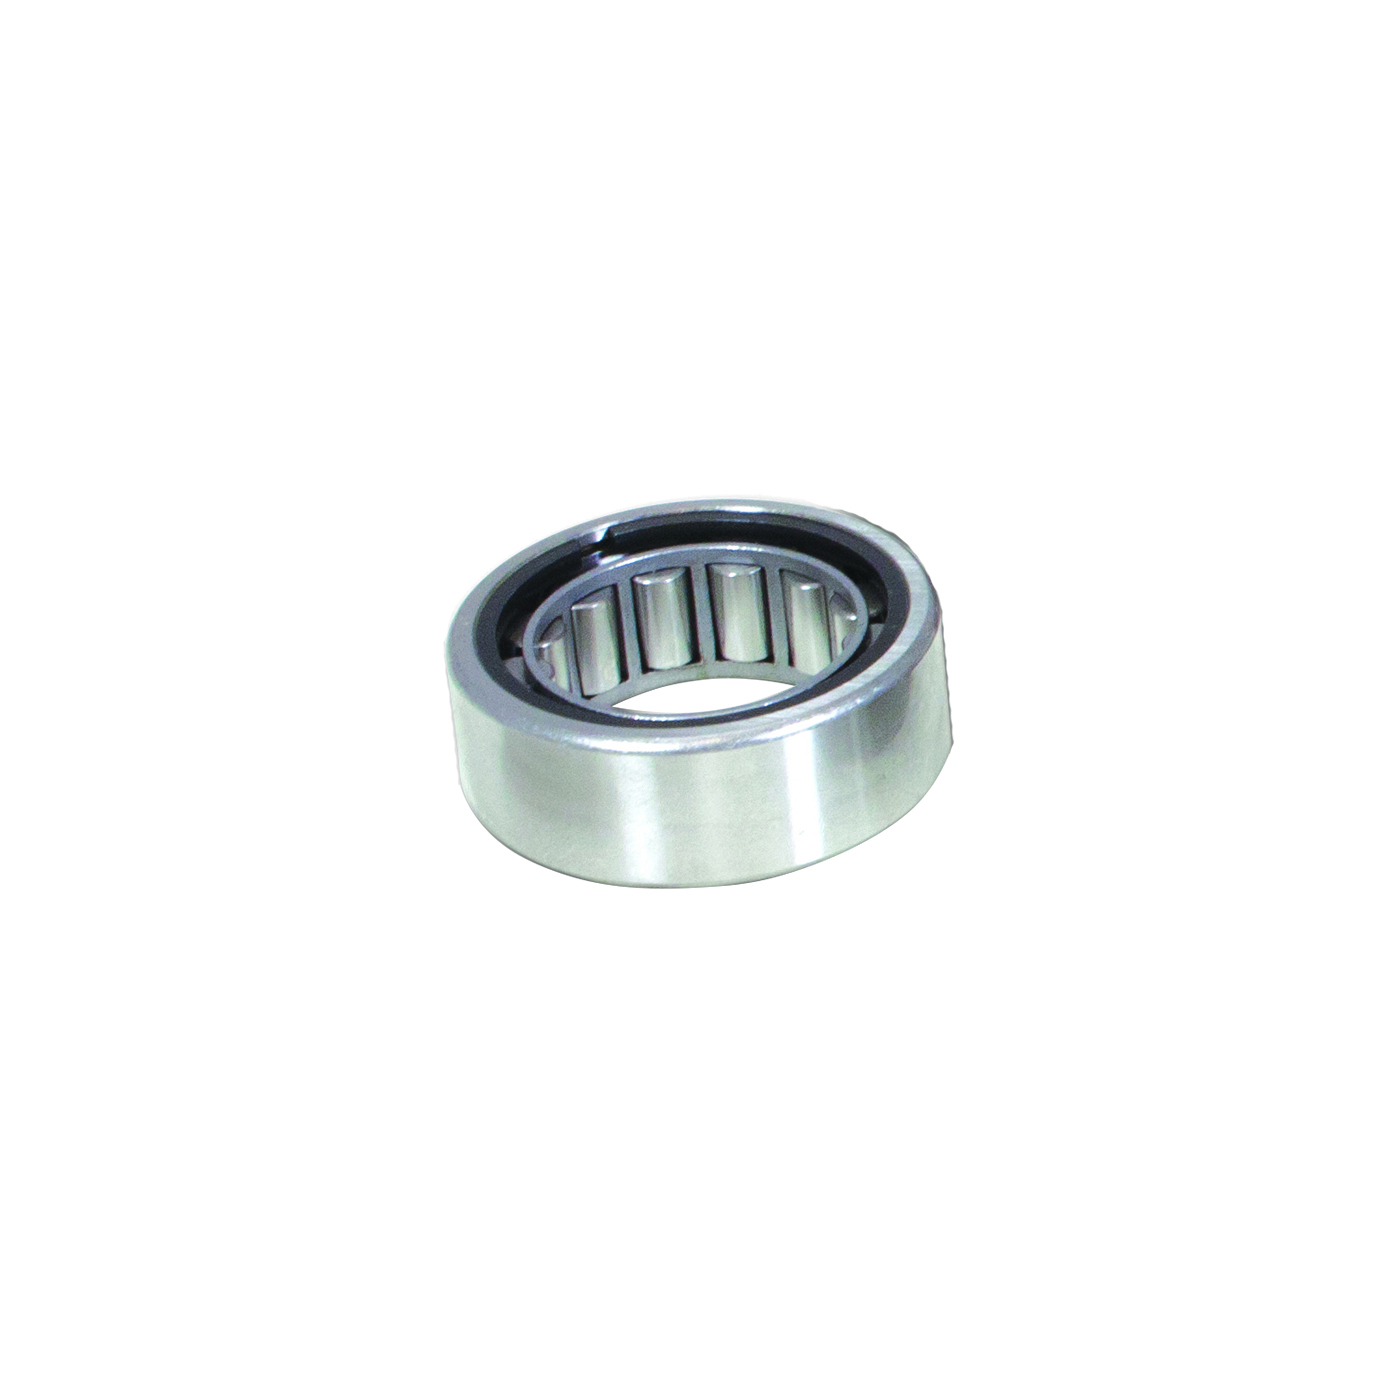 YB PB-002 - Pilot bearing for Ford 9